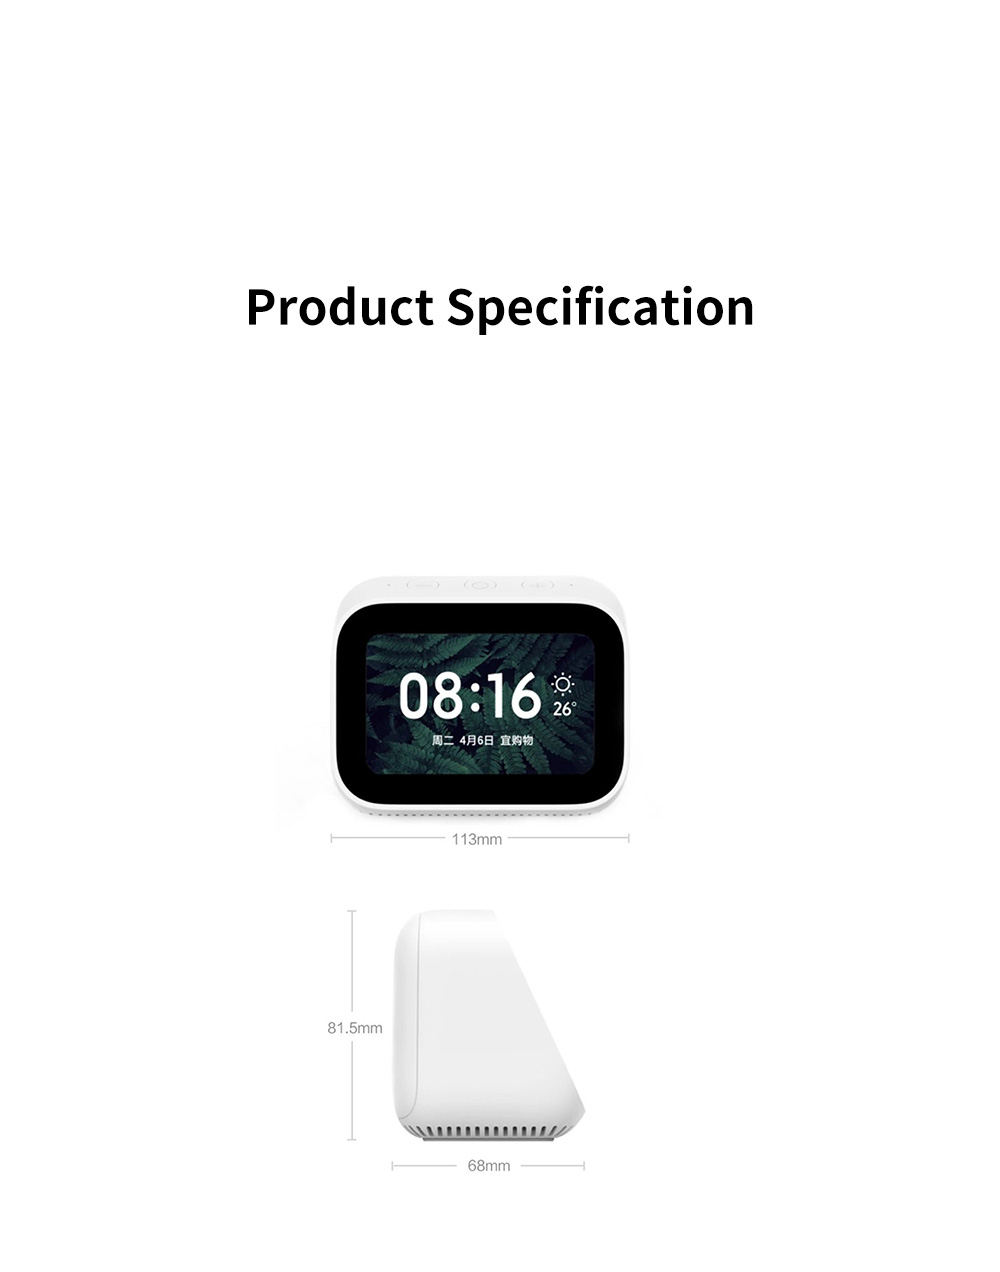 XIAOMI Touch Screen Loudspeaker for Family Use Intelligent Wireless Baffle Box Bluetooth Connection Sound Box 9